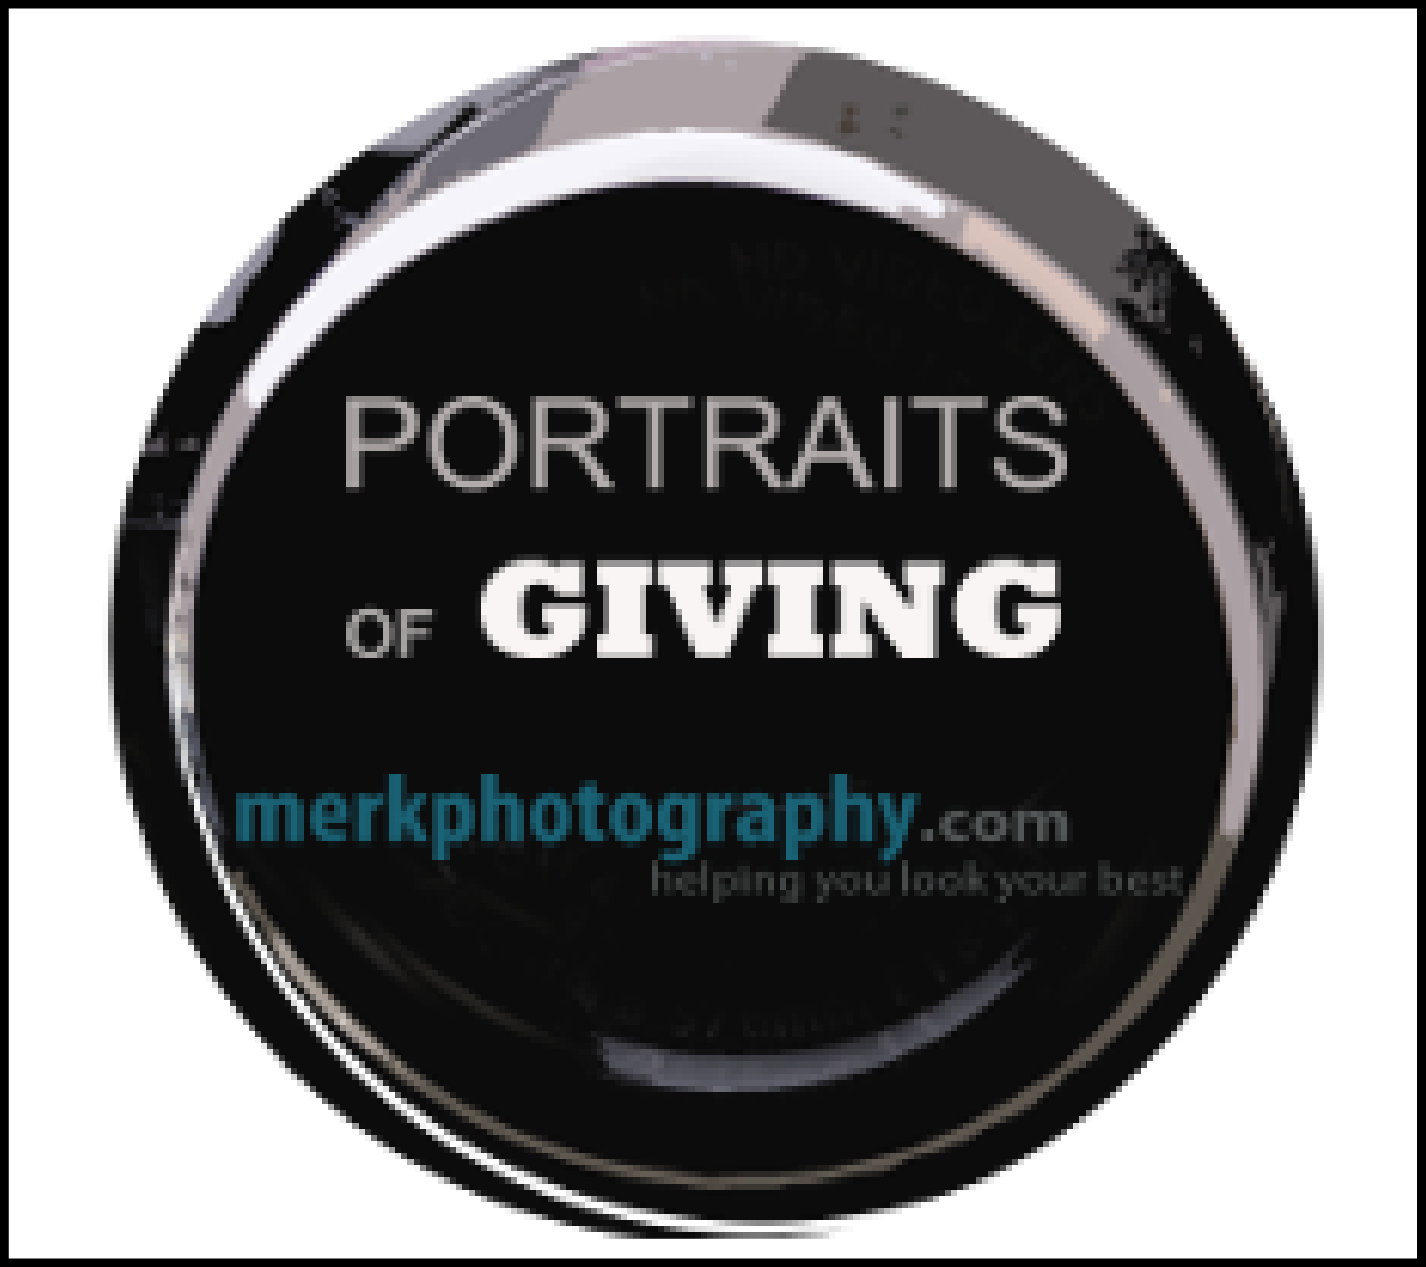 Portraits of giving